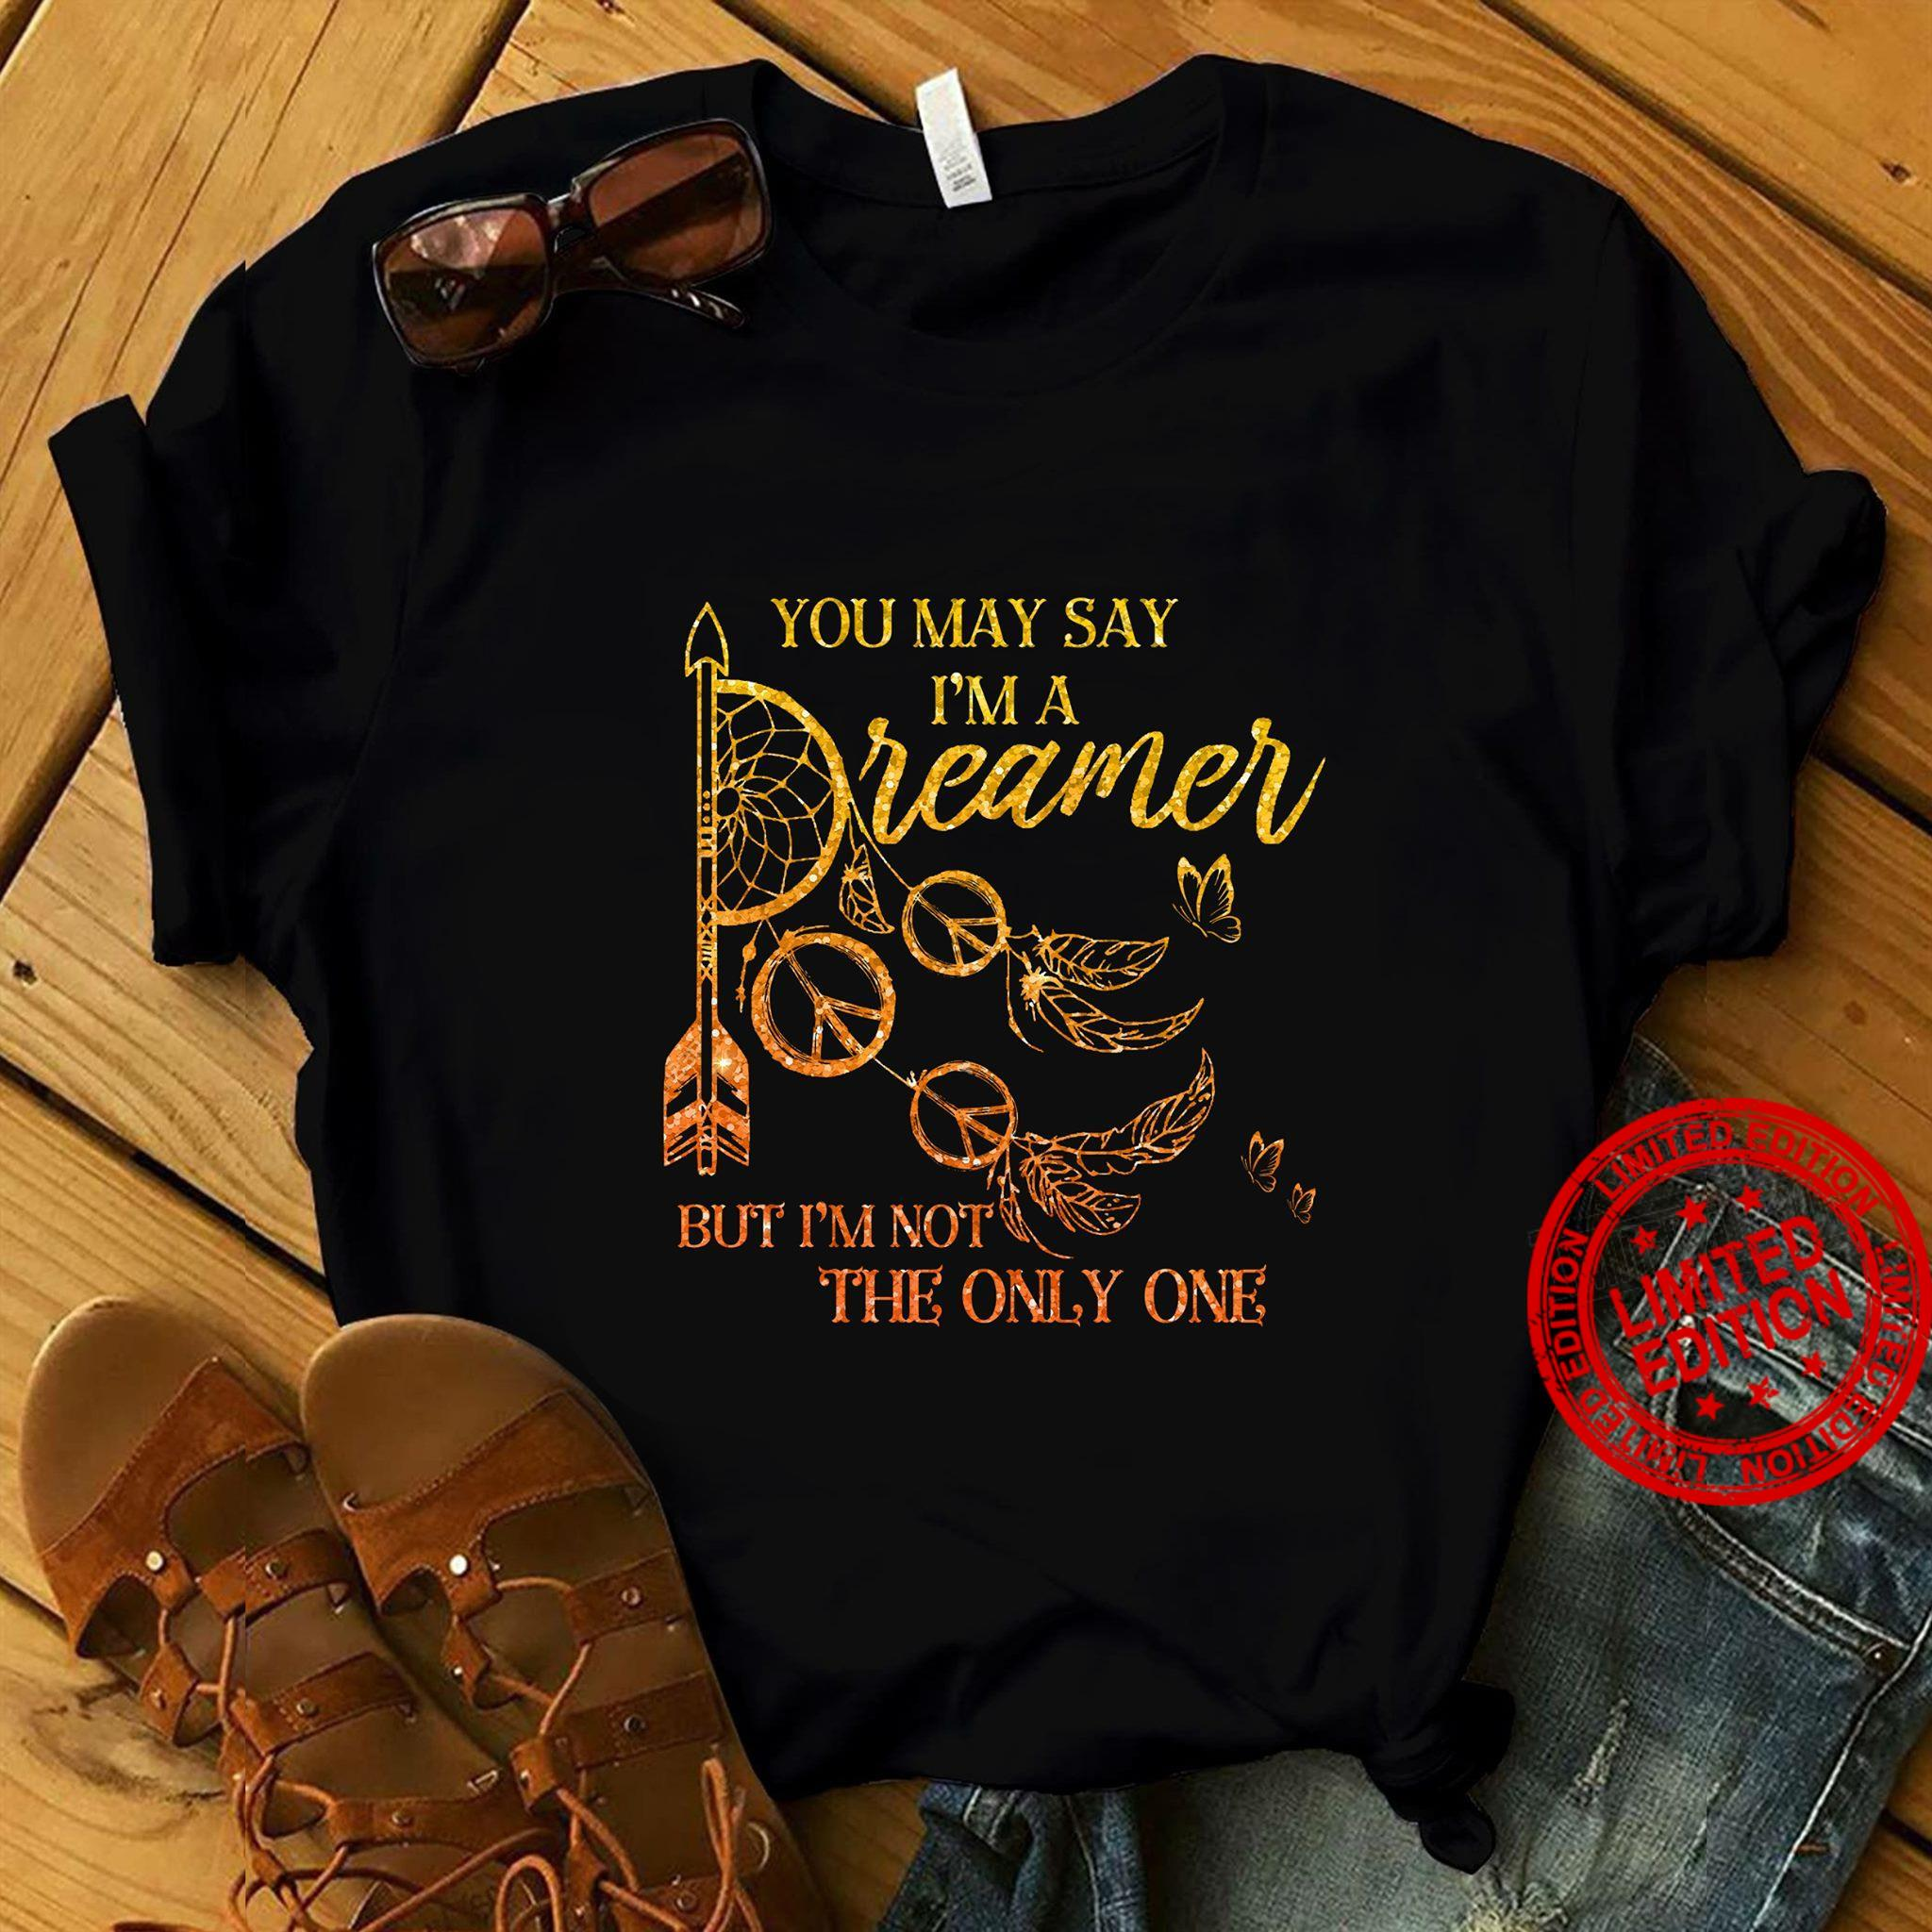 You May Say A Dreamer But I'm Not The Only One Shirt